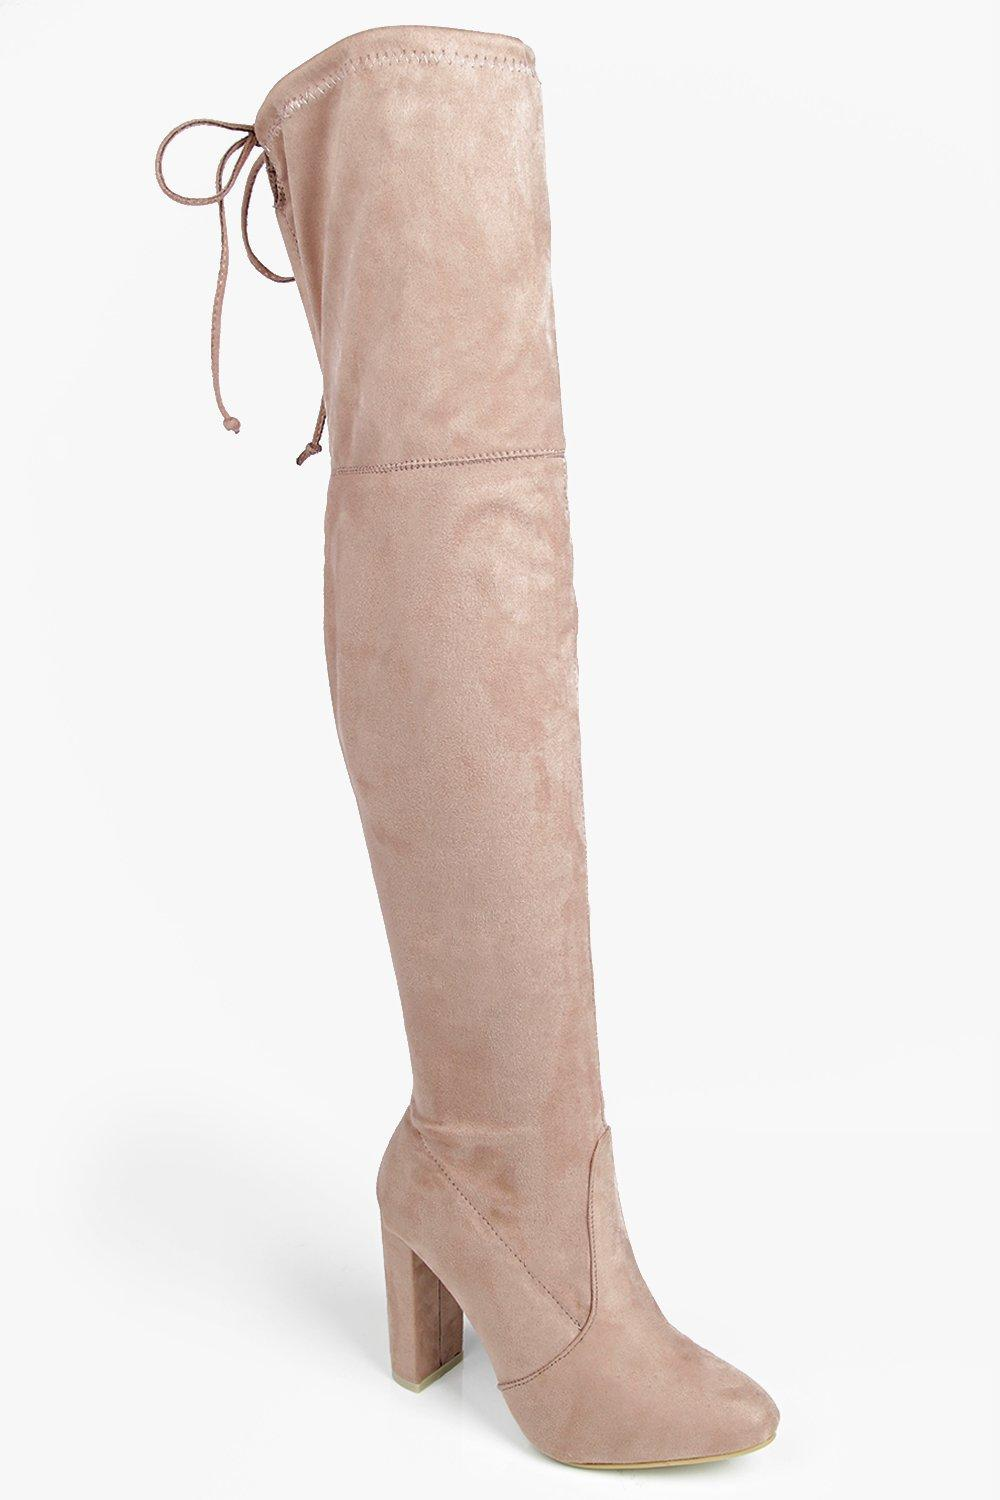 7d8327fe814b Mia Block Heel Lace Up Back Over Knee Boot